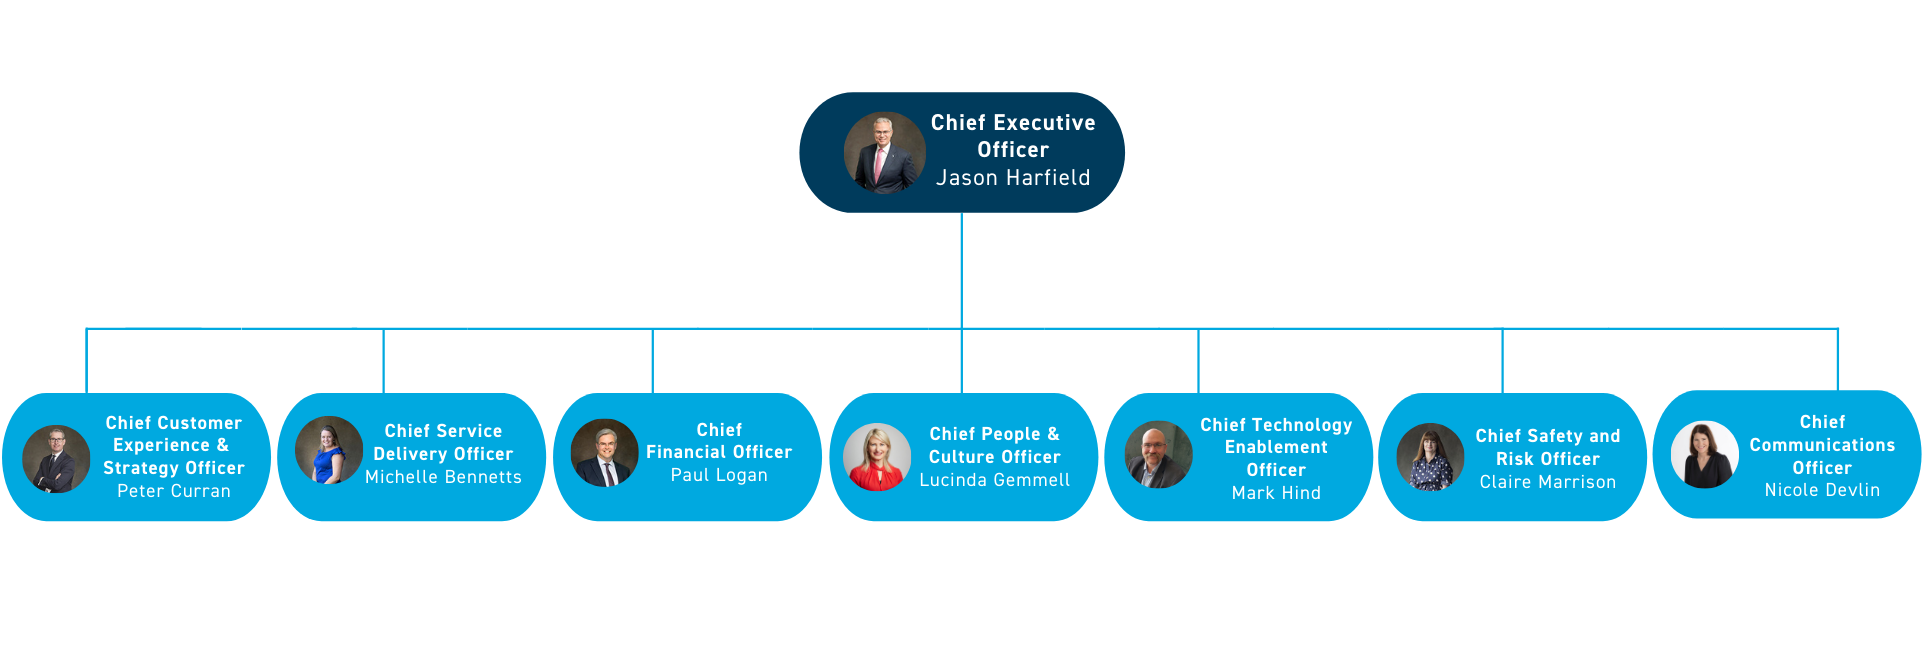 Organisational Structure of Value Chain Operating Model April 2021